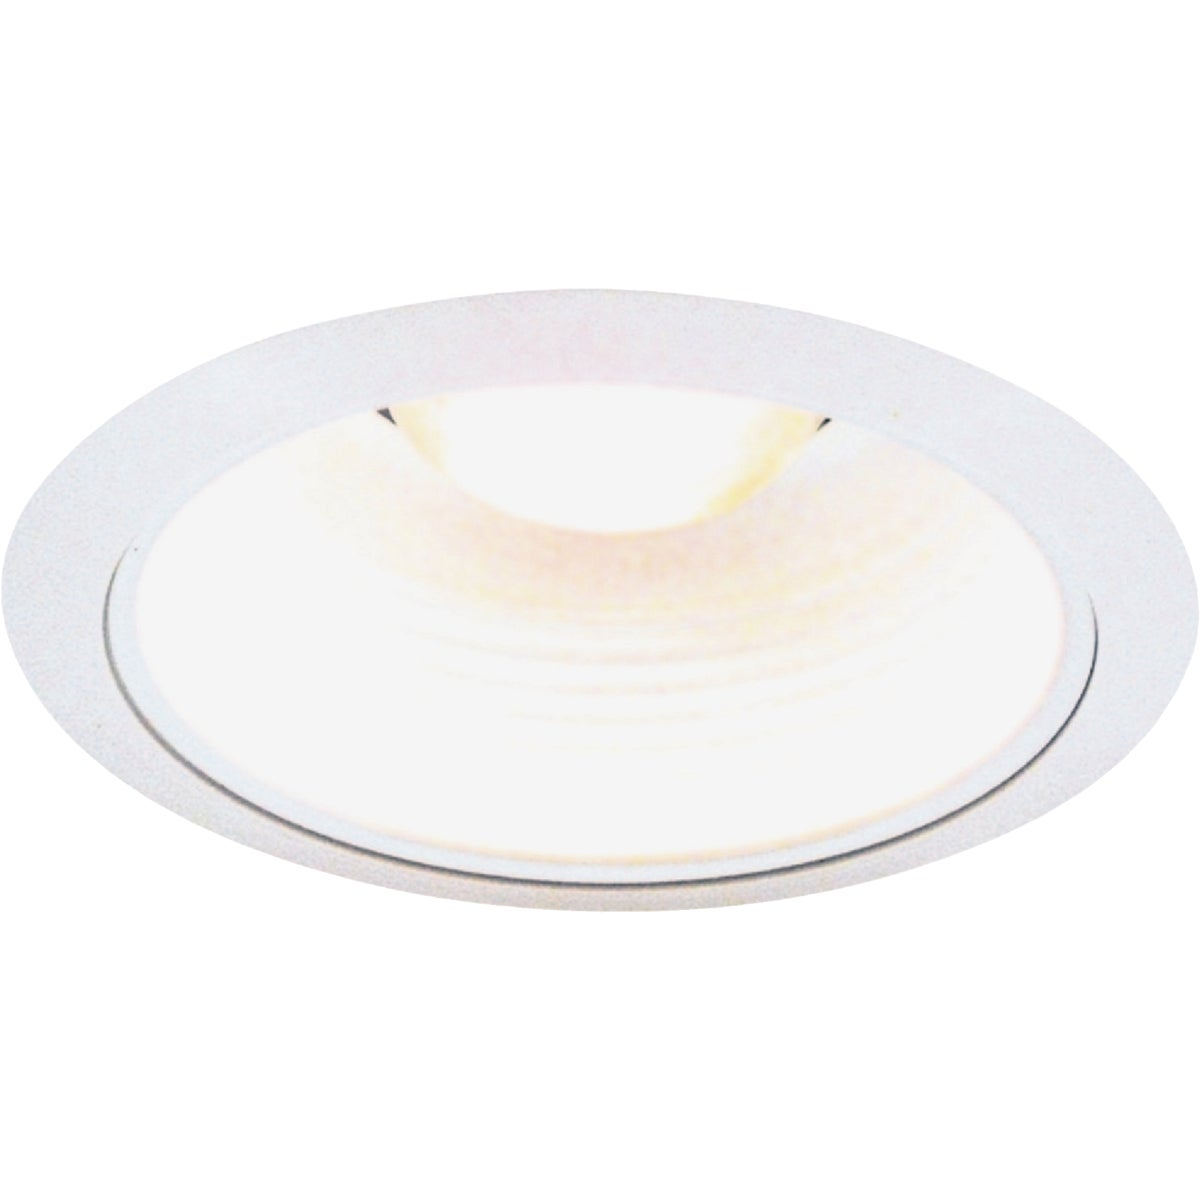 WHT RECESS FIXTURE TRIM